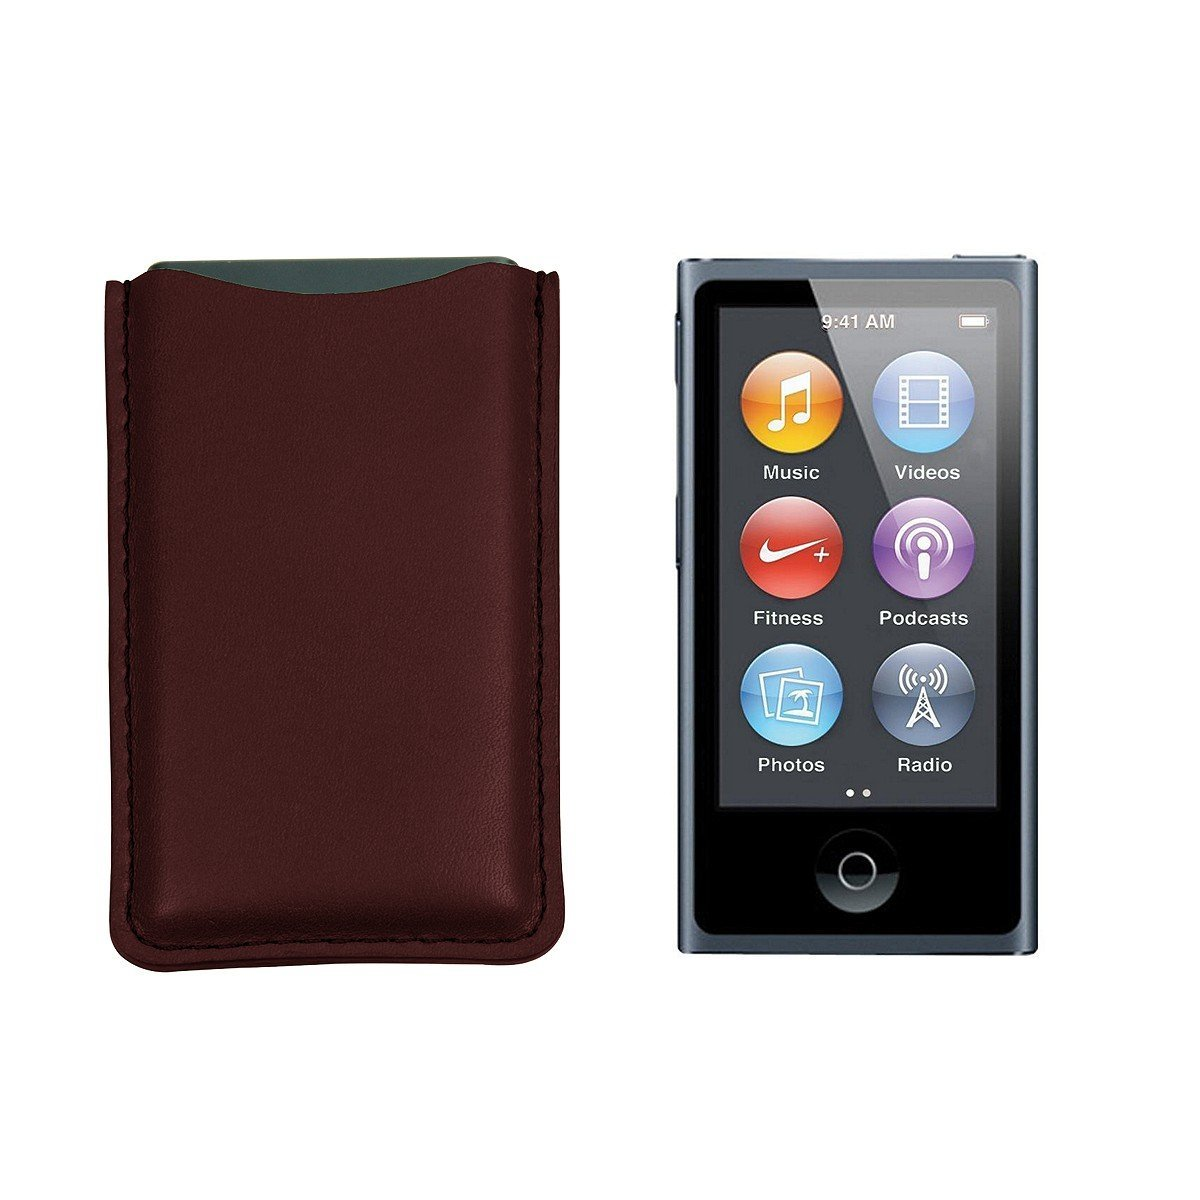 Lucrin - iPod Nano Pouch - Burgundy - Smooth Leather